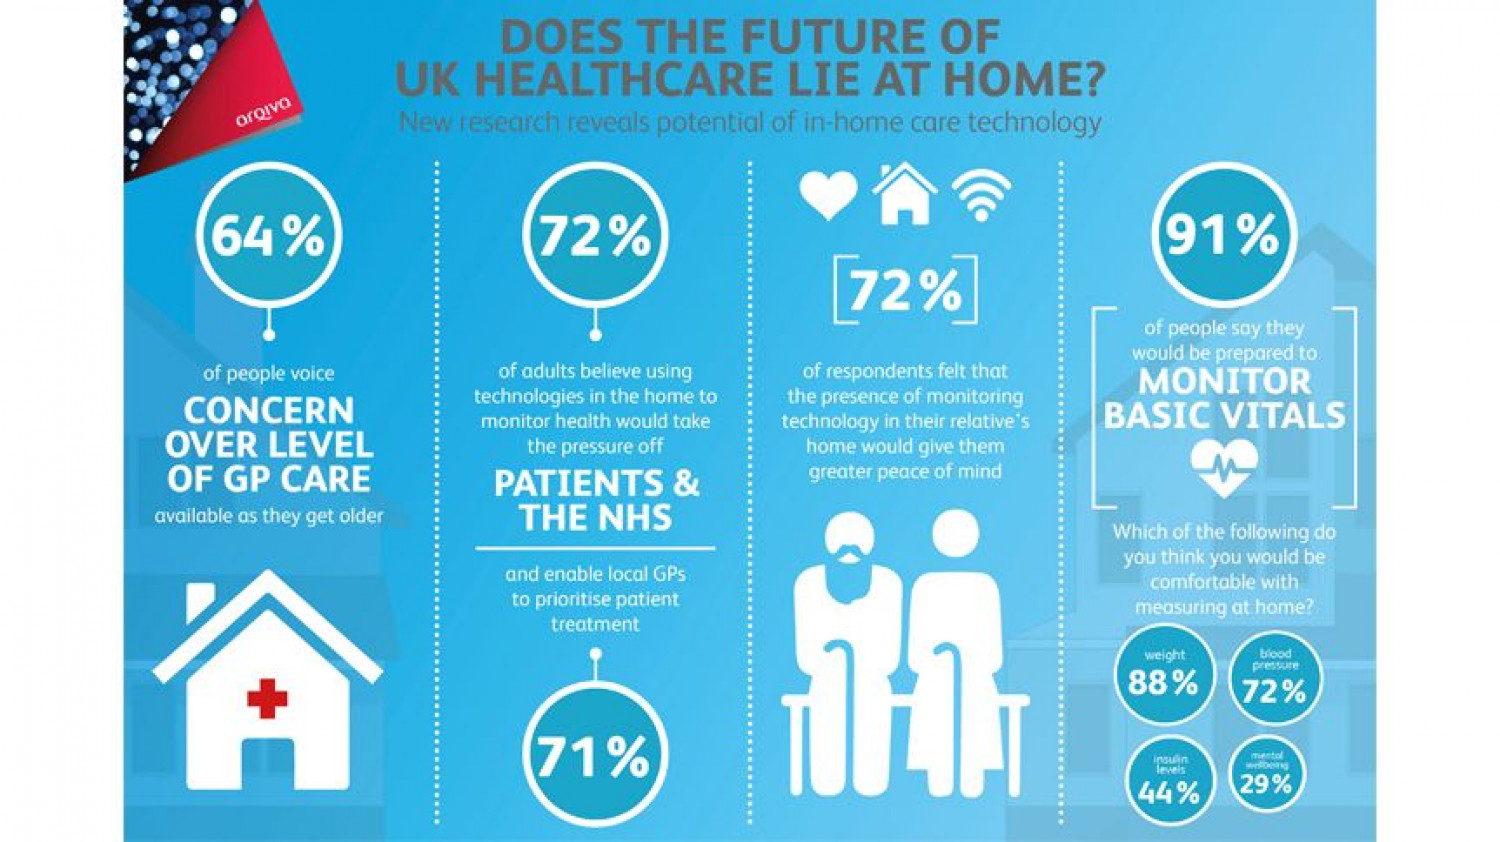 Does the future of UK healthcare lie at home? Infographic